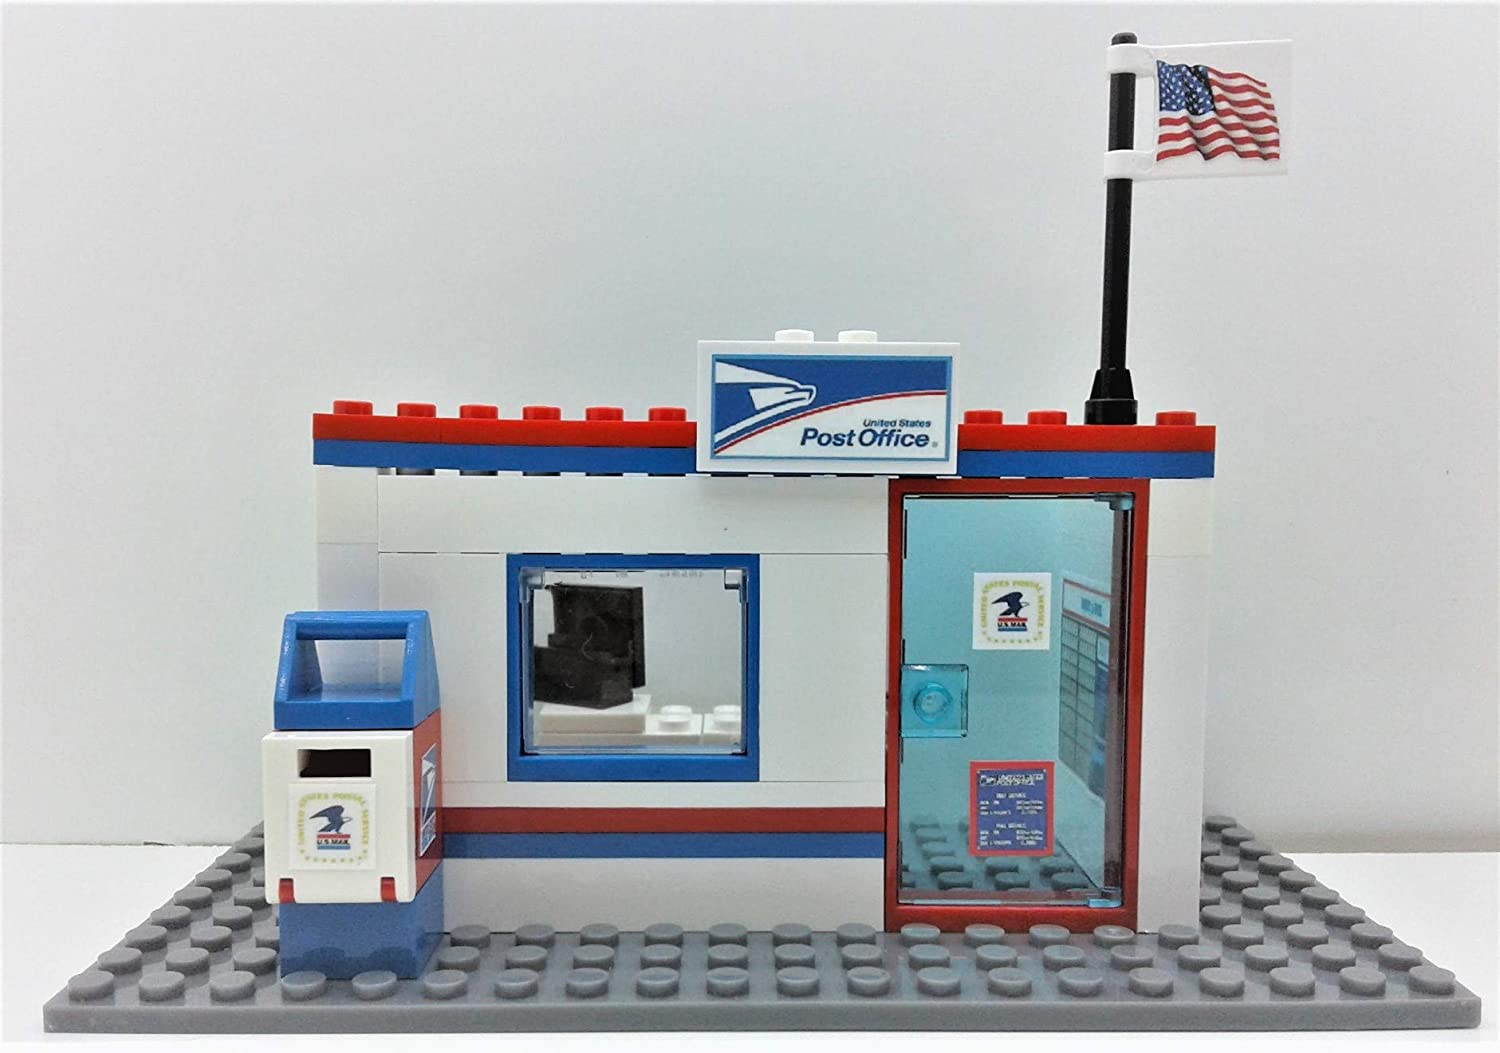 Building Bricks Toys Custom City USPS Postal Service Post Office. Ready to Play!